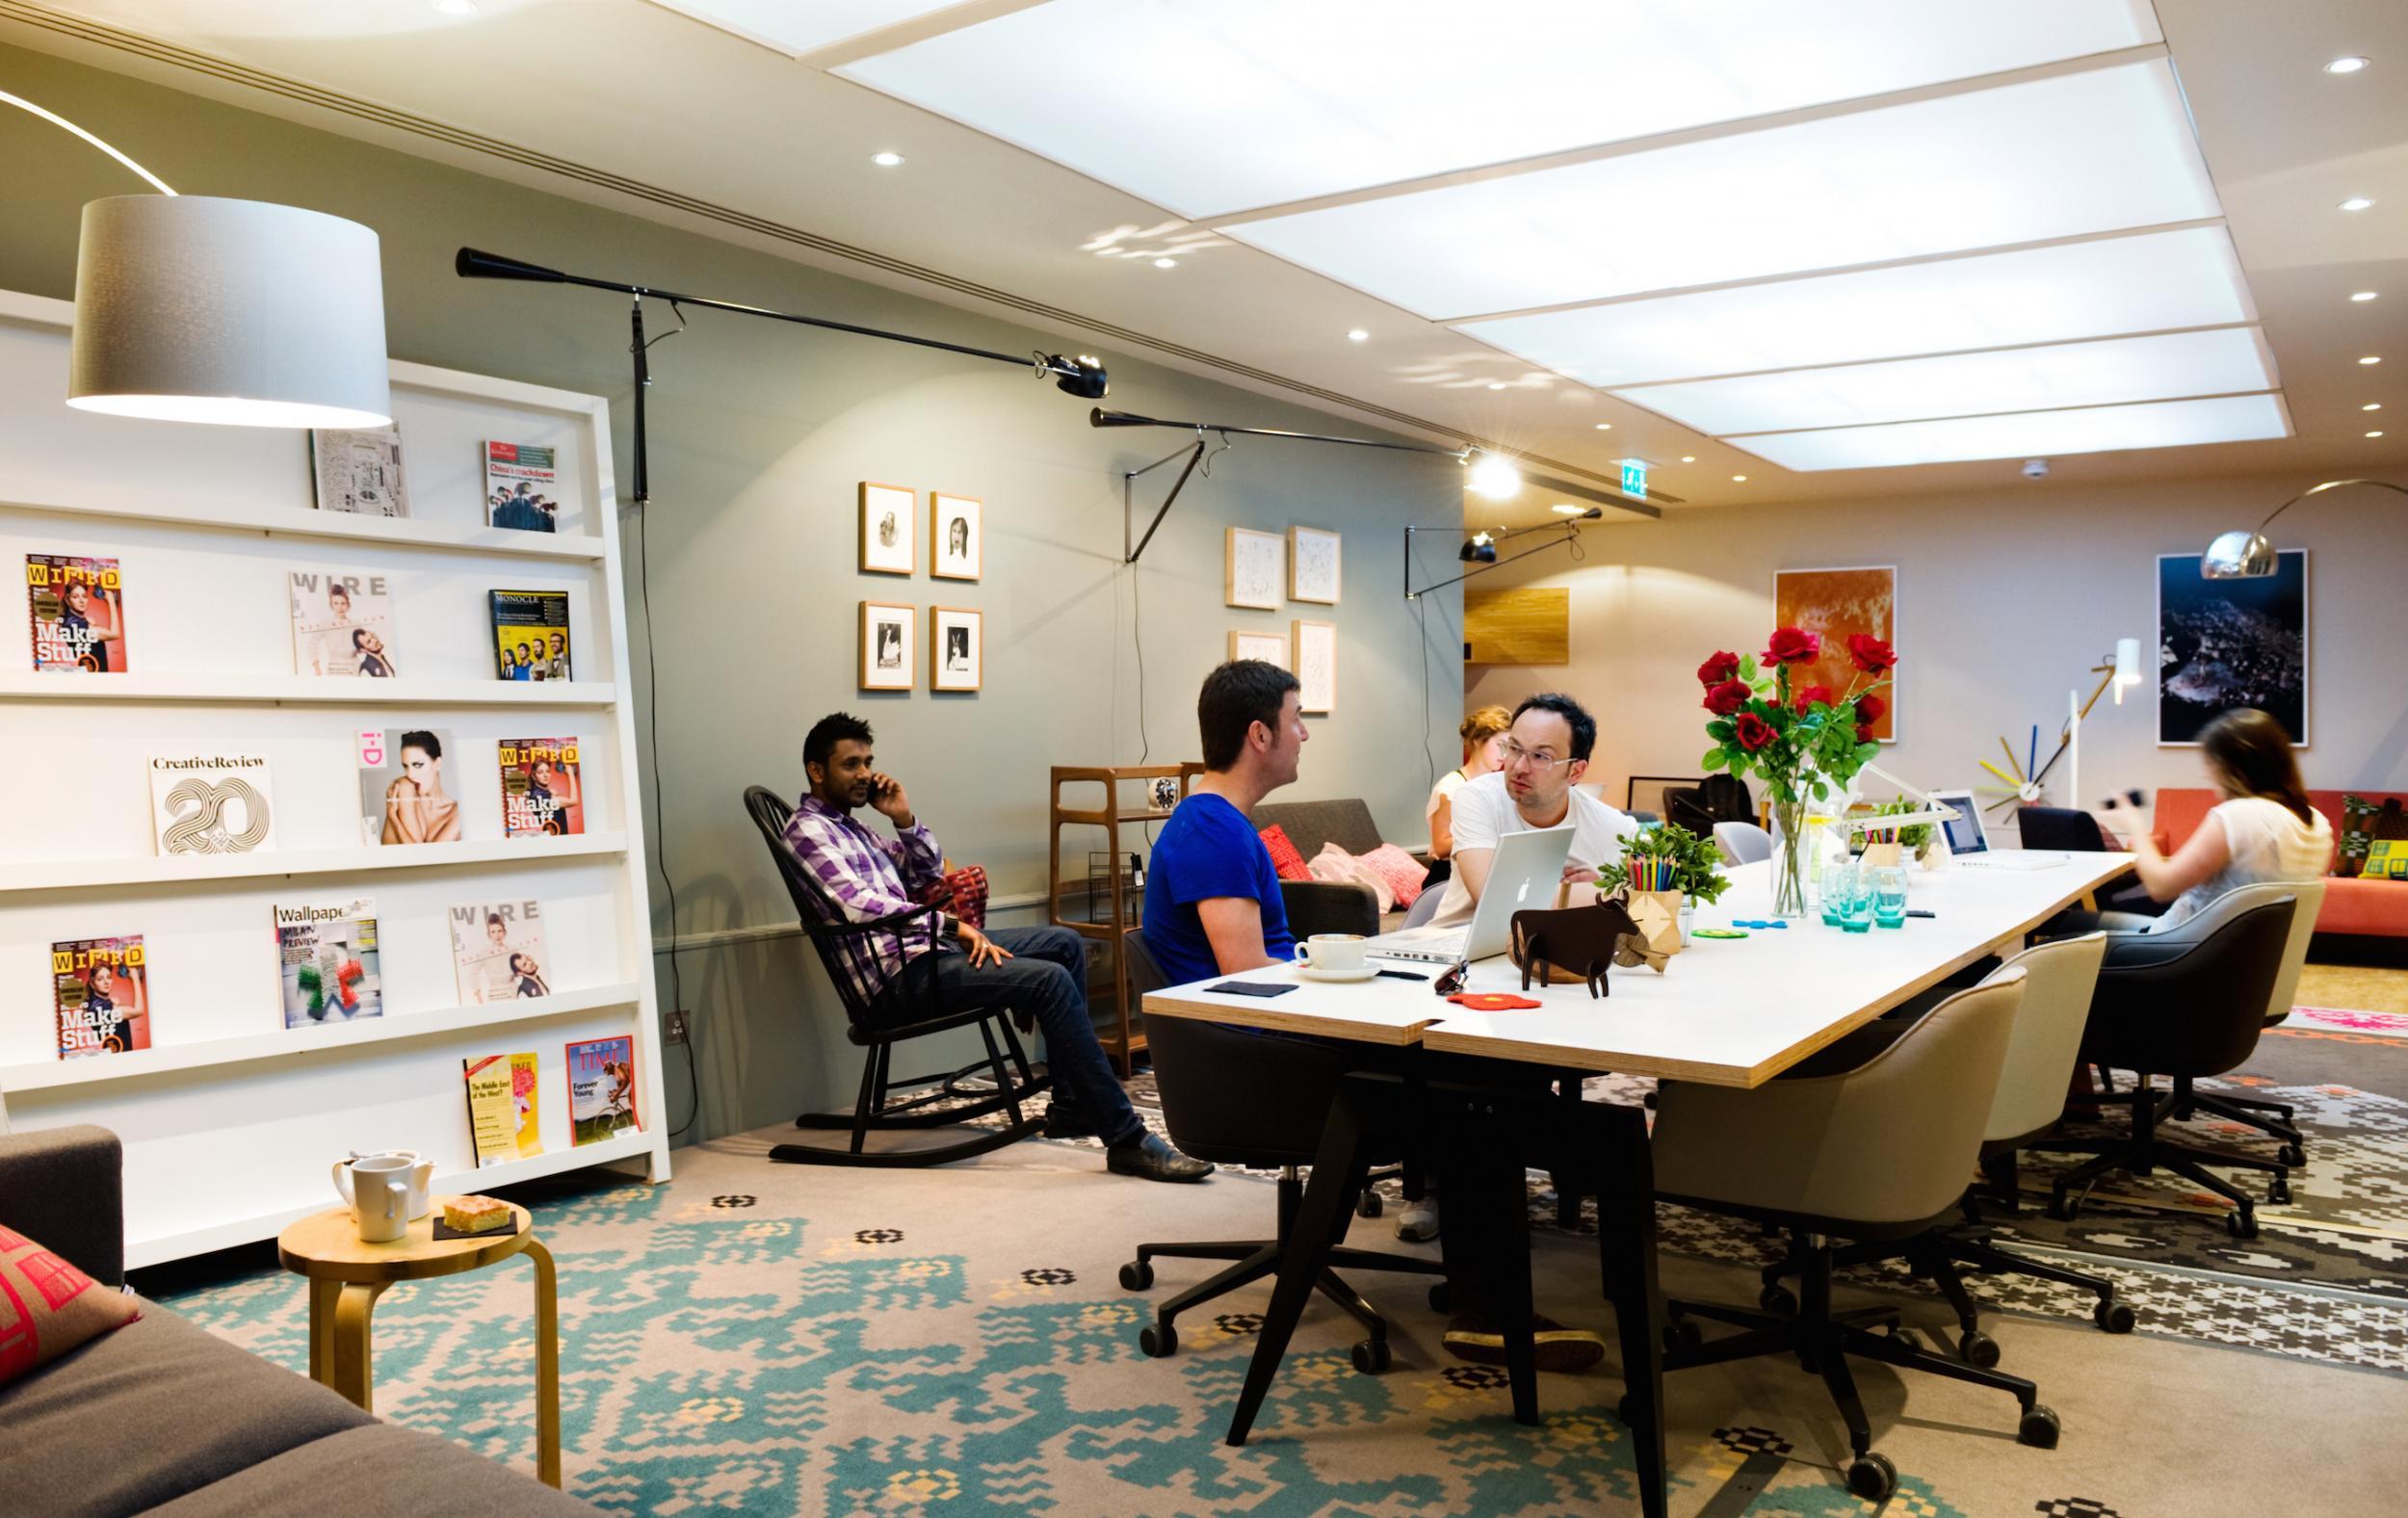 4 fascinating facts about shared office space for rent